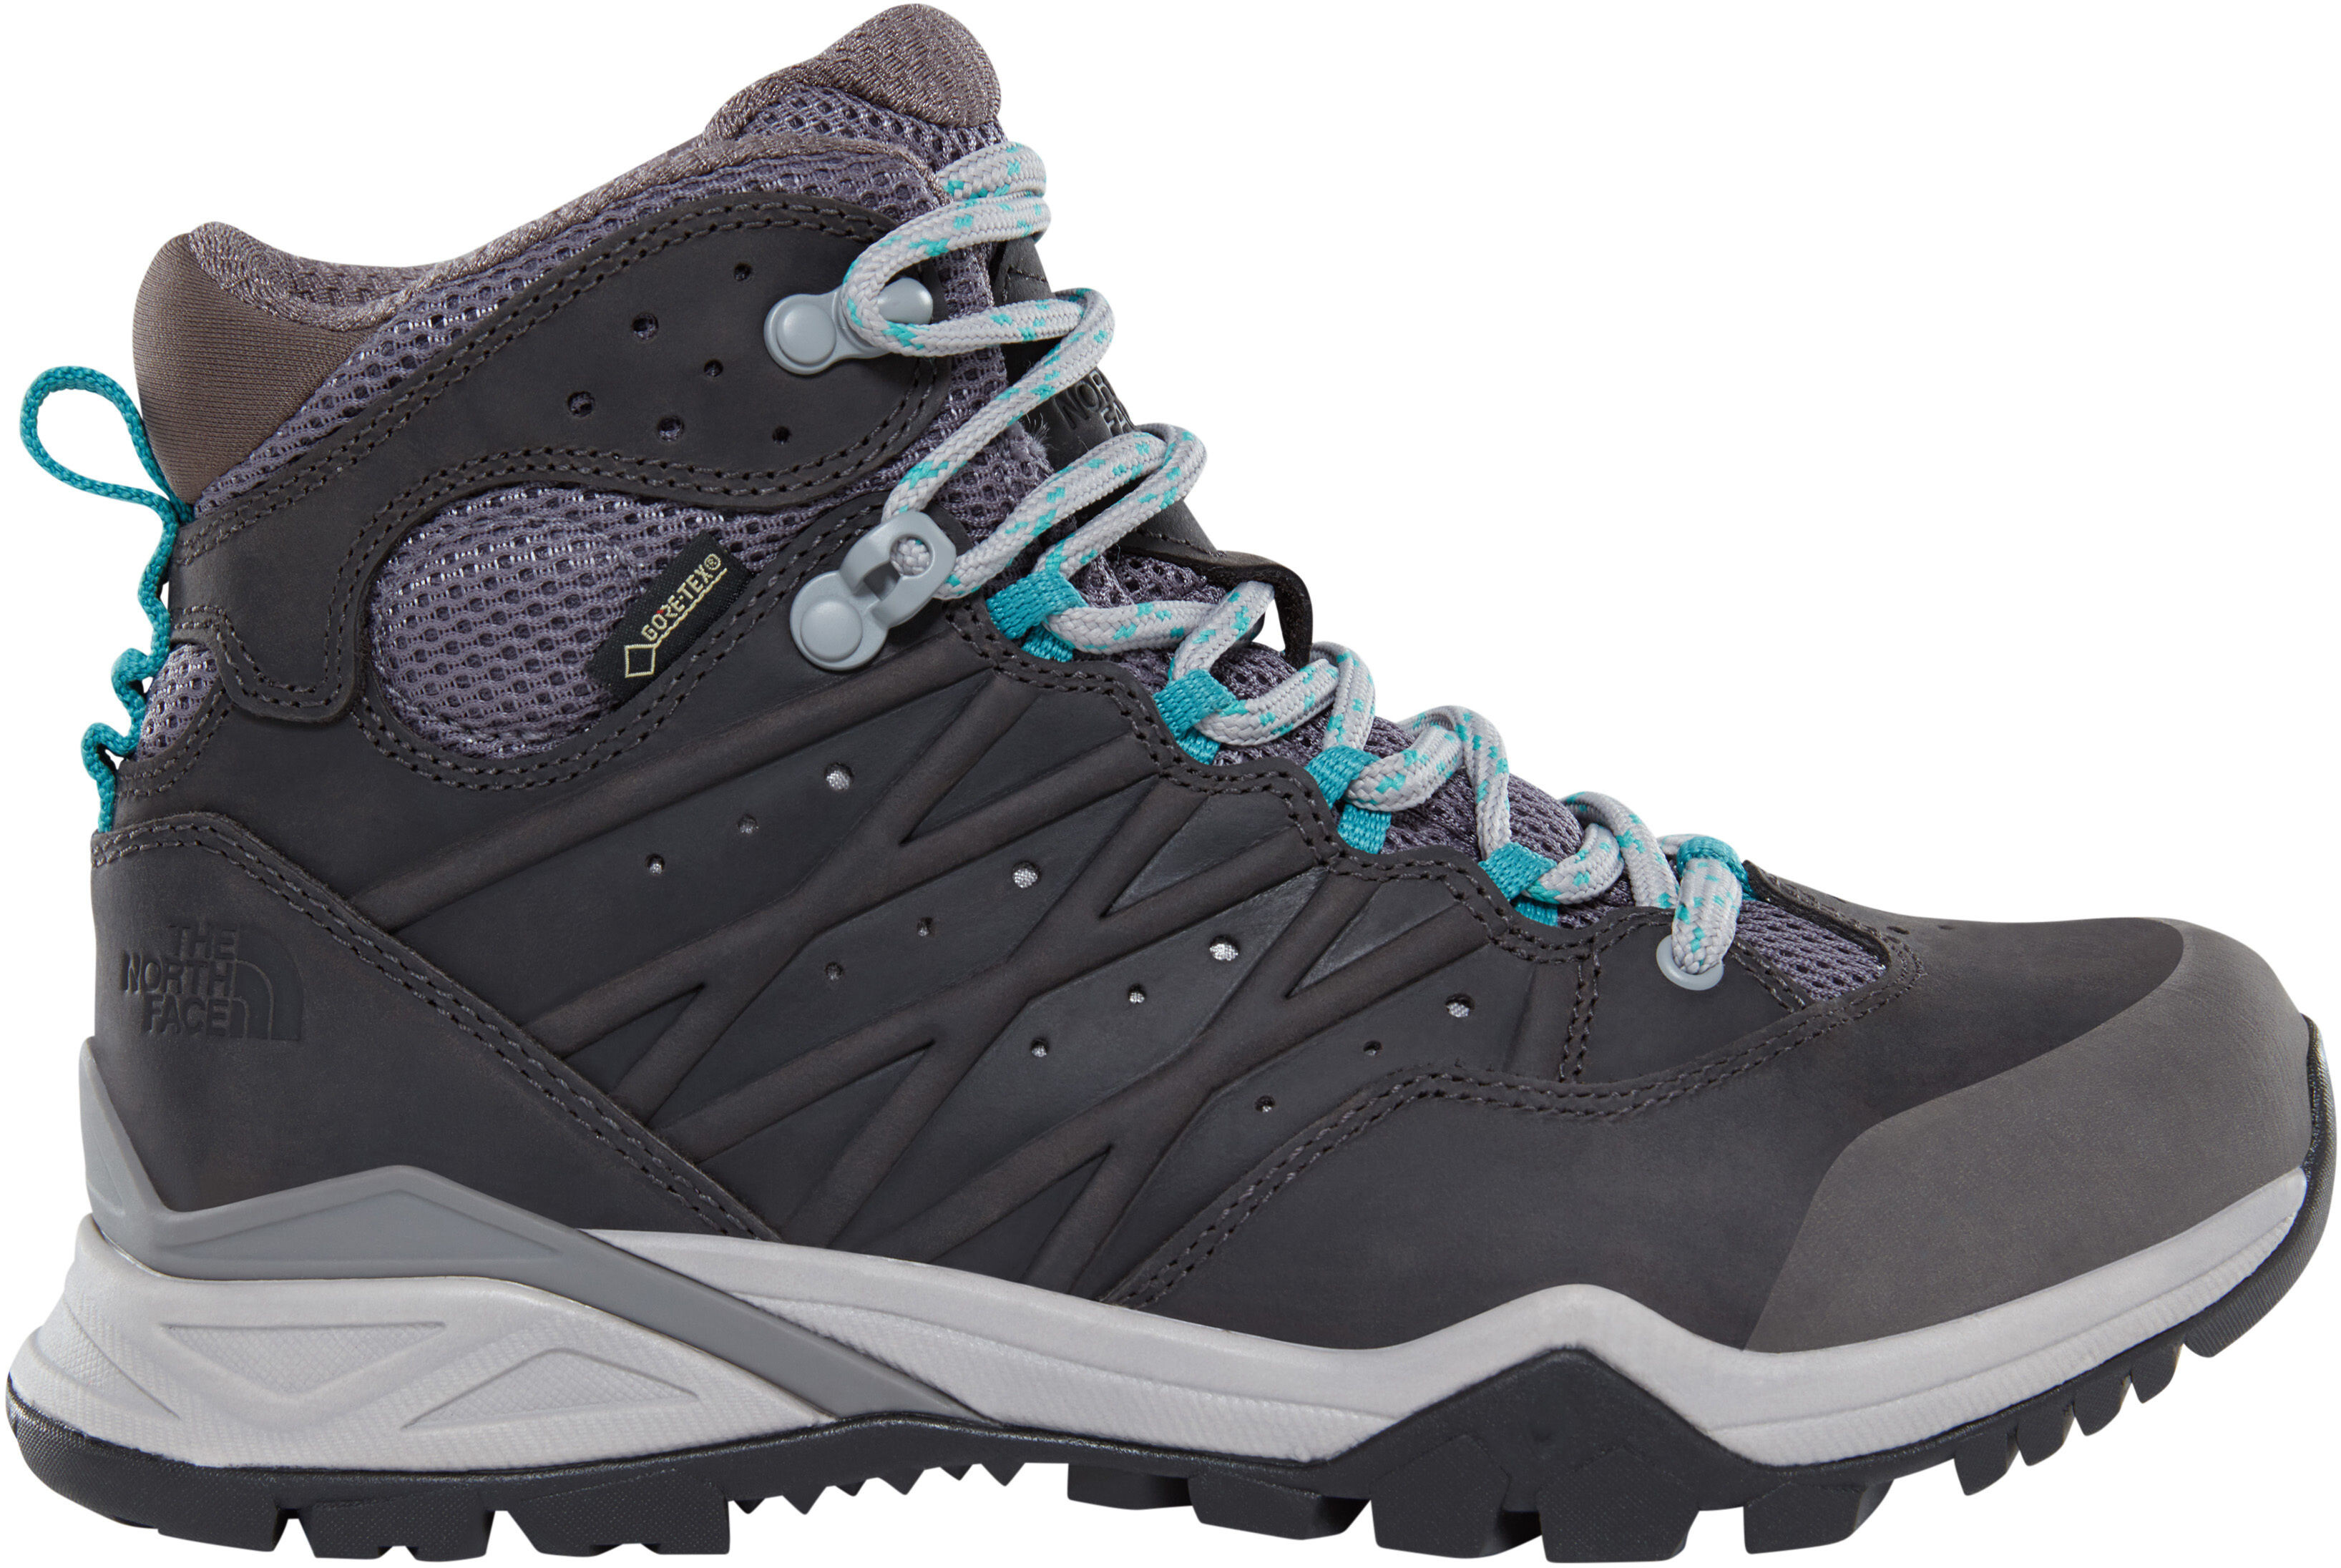 ebc6630213 The North Face Hedgehog Hike II Mid GTX - Chaussures Femme - gris ...